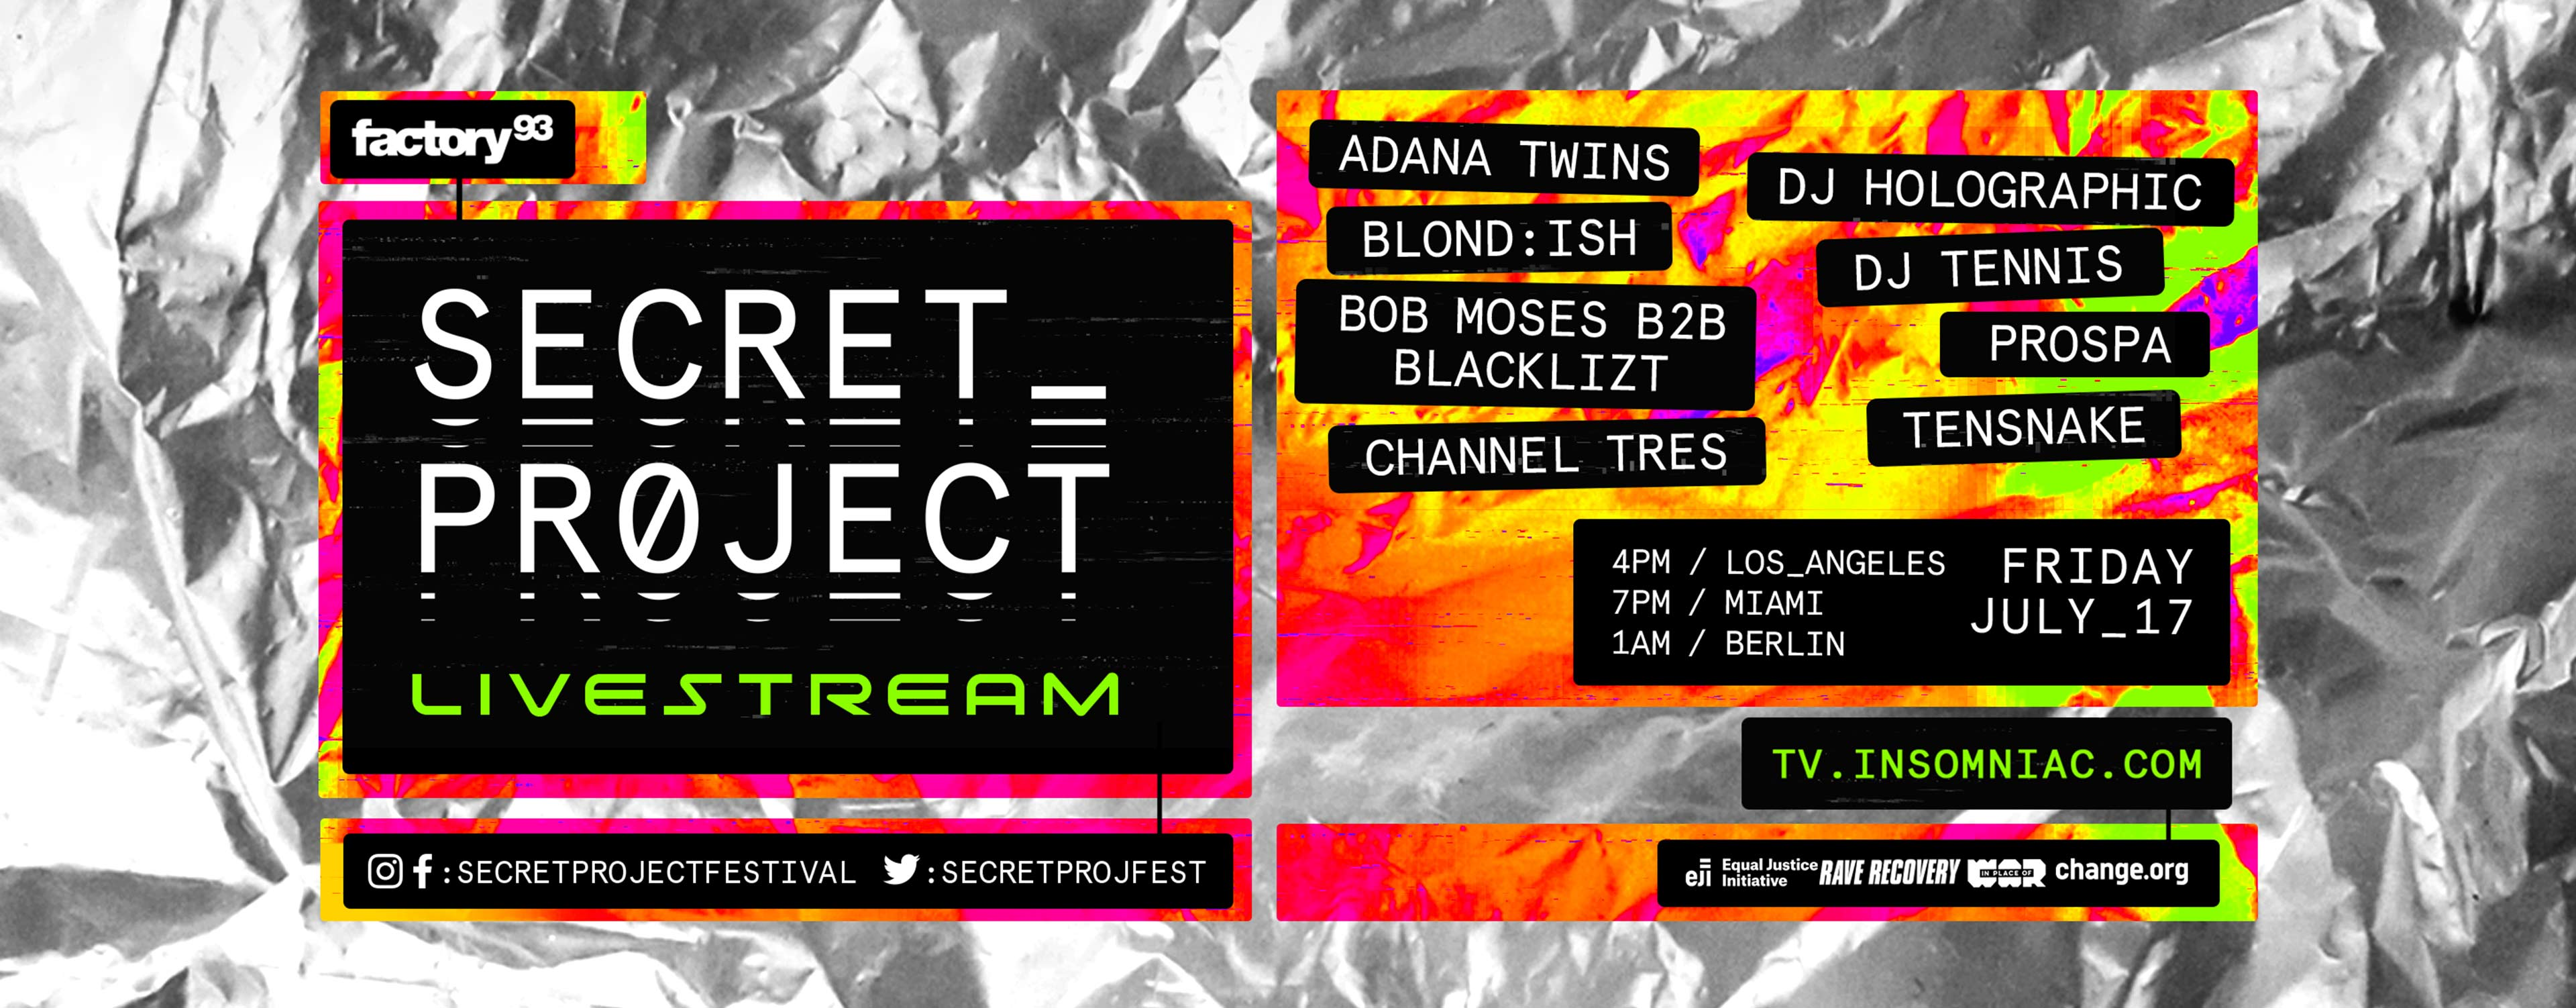 Secret_Project Live Stream